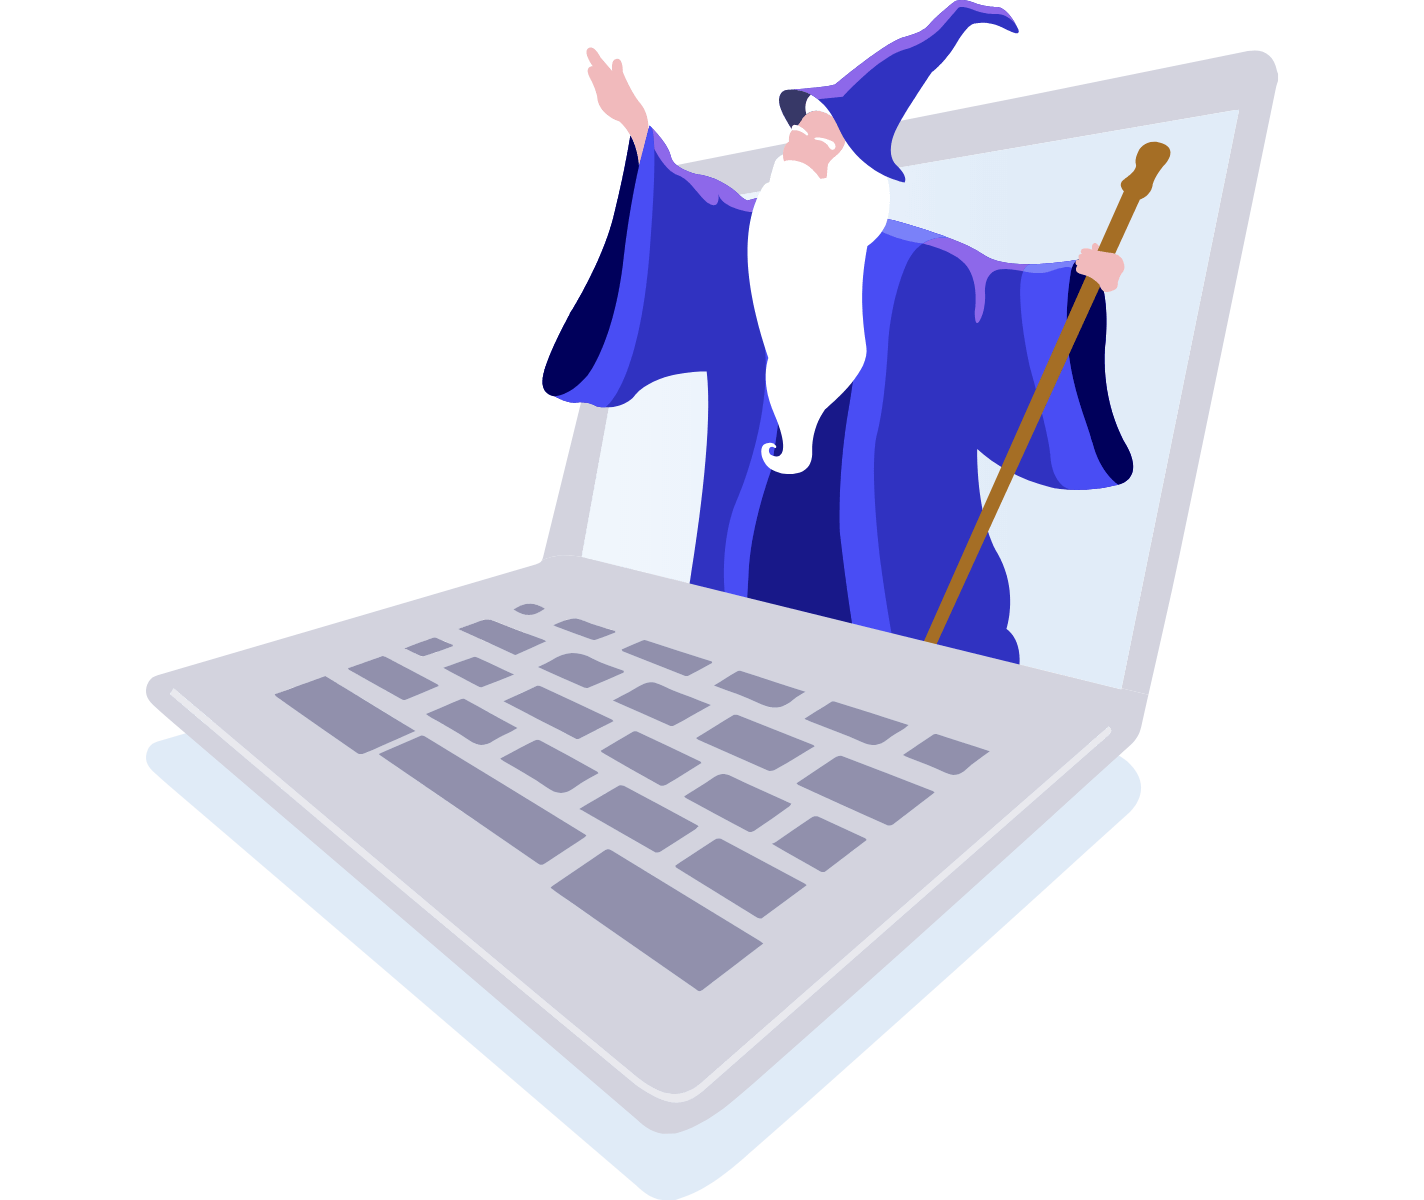 Wizard appearing out of laptop